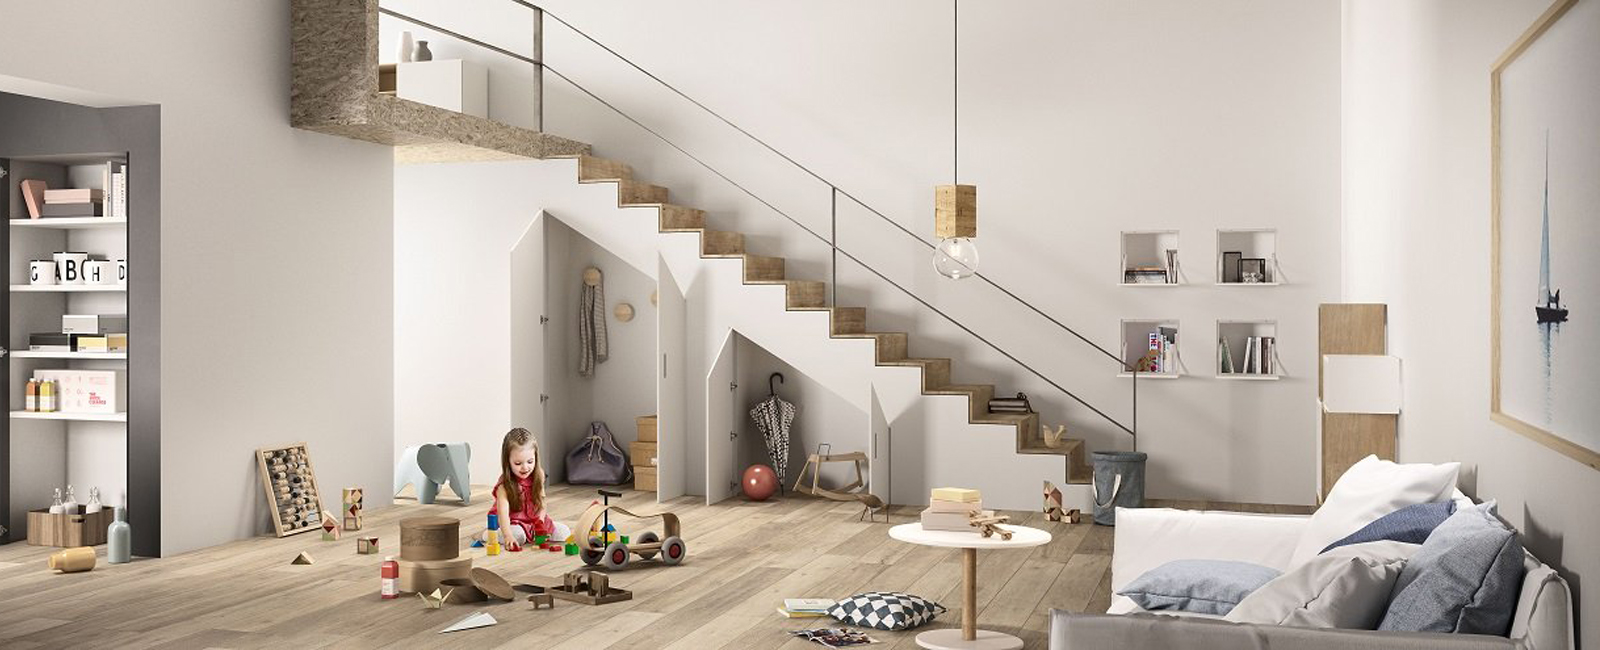 4 simple ideas to exploit the space under the stairs